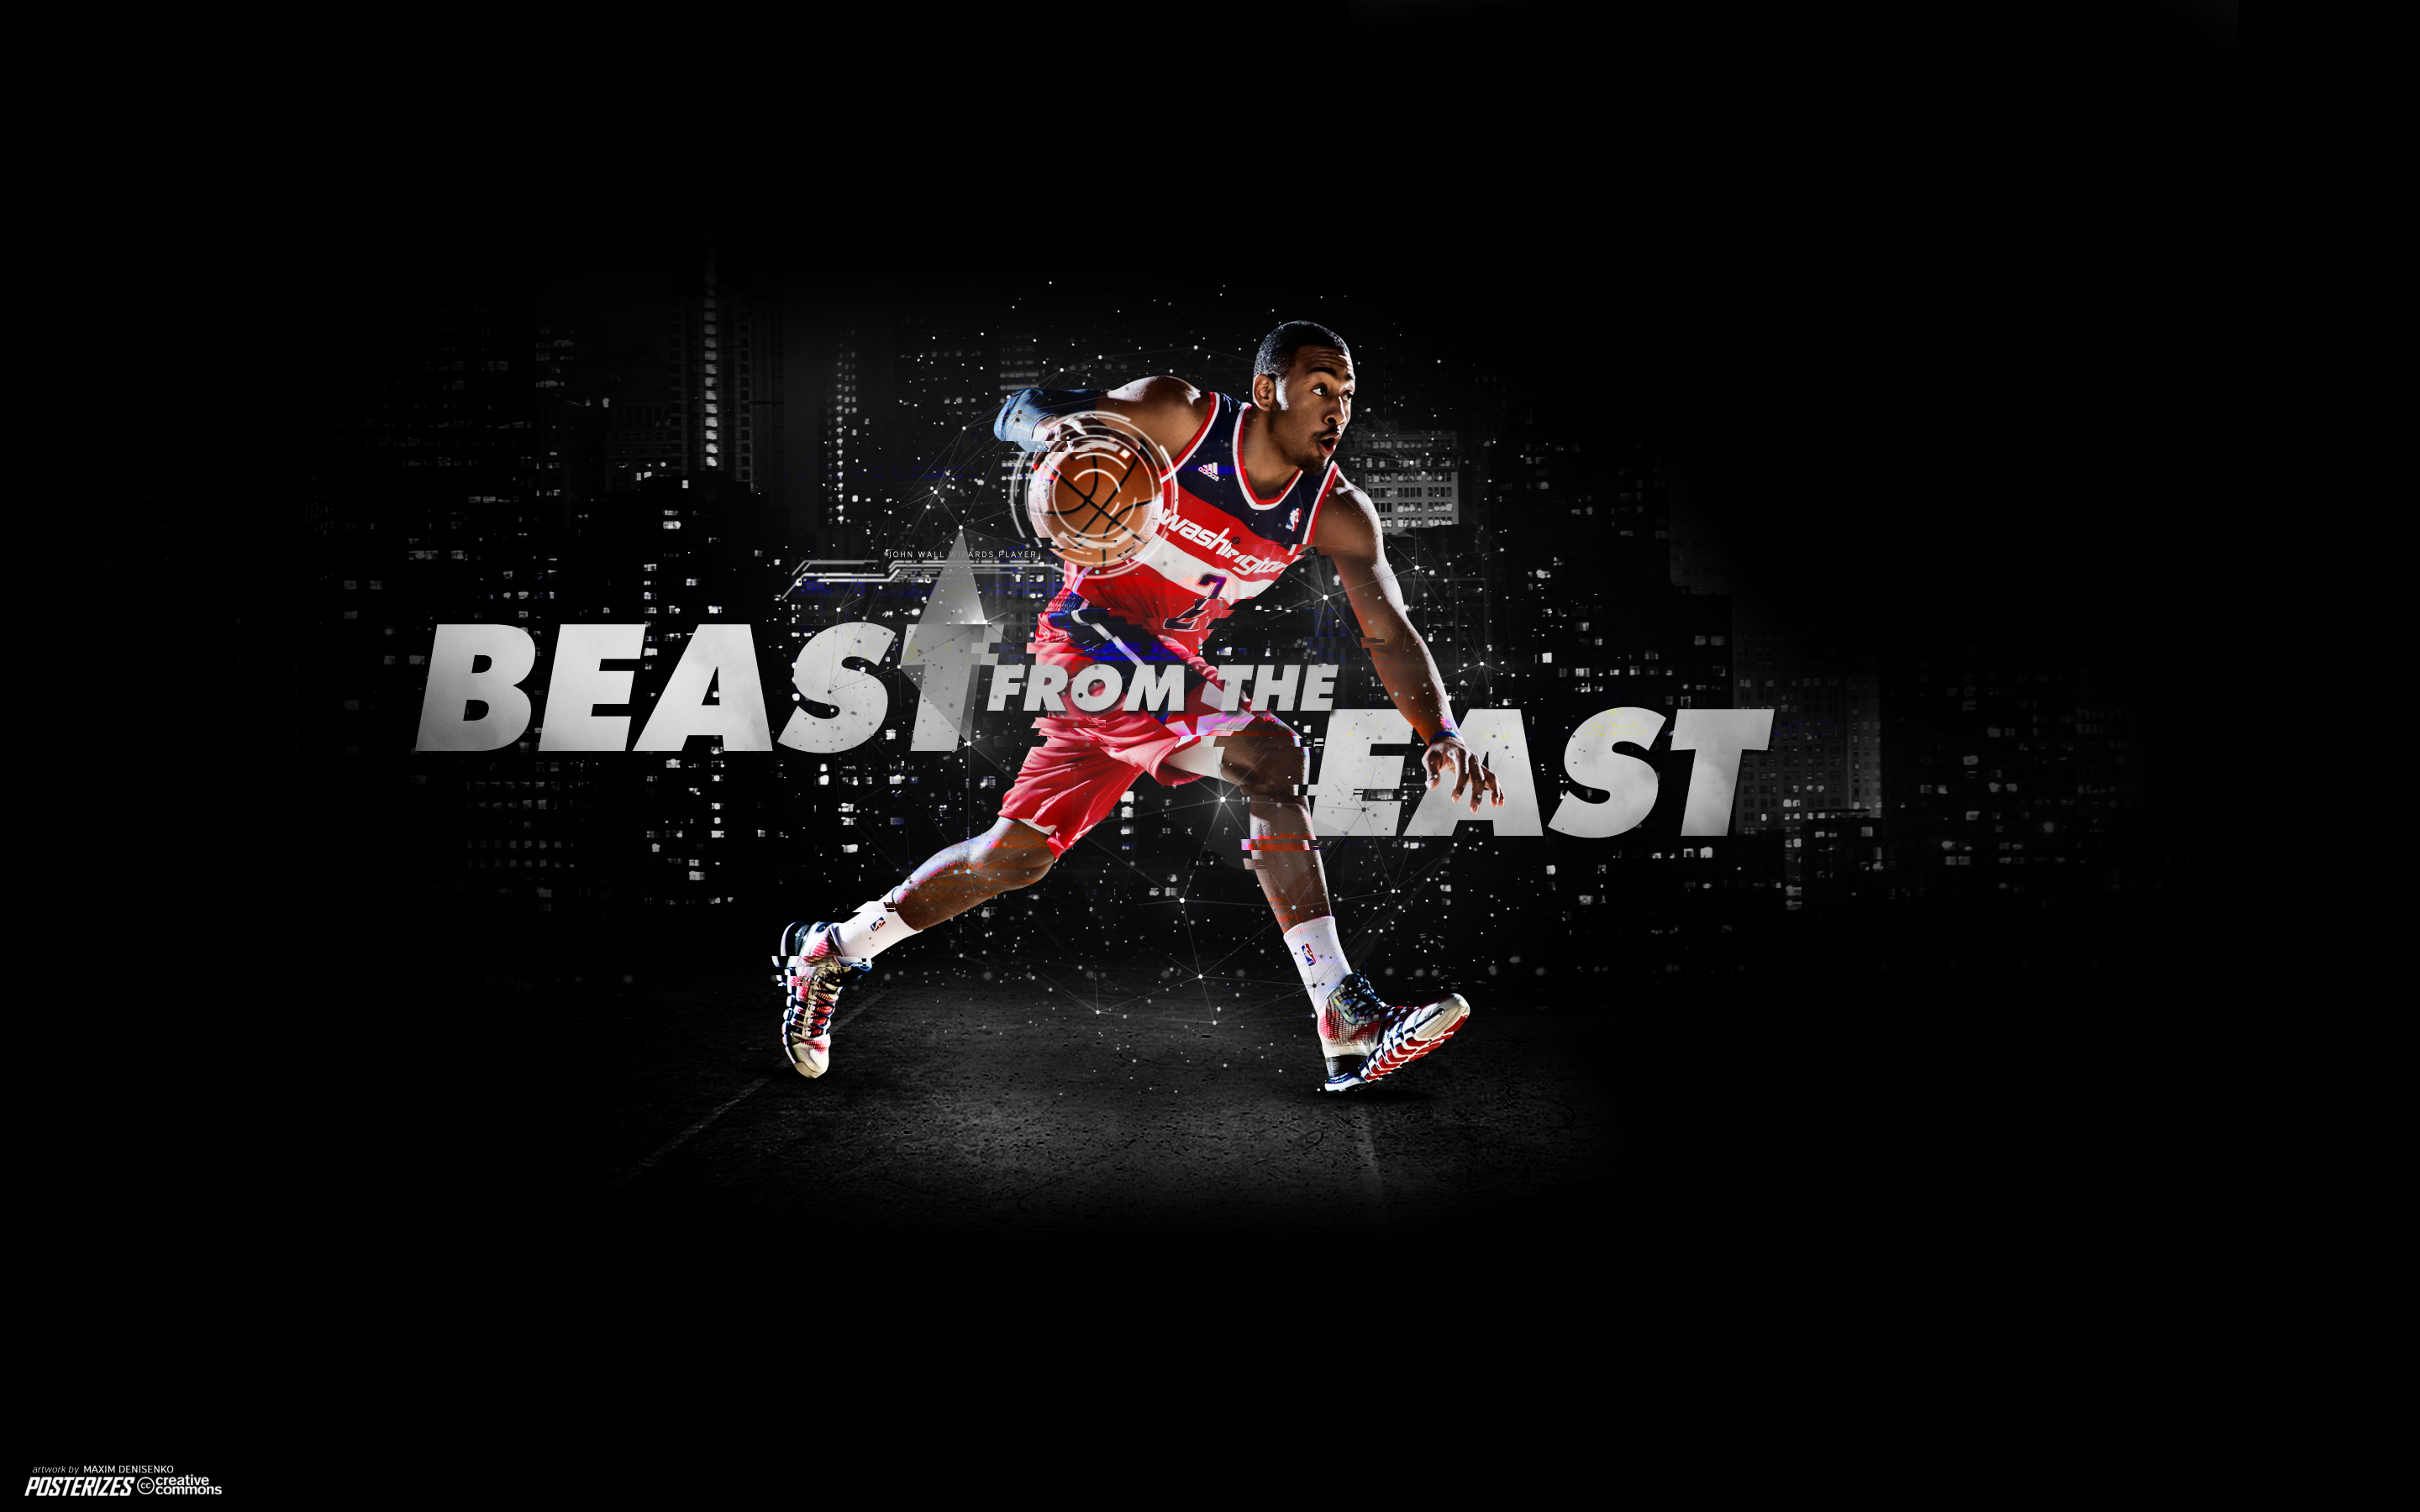 John Wall Dunking Wallpaper Wizards